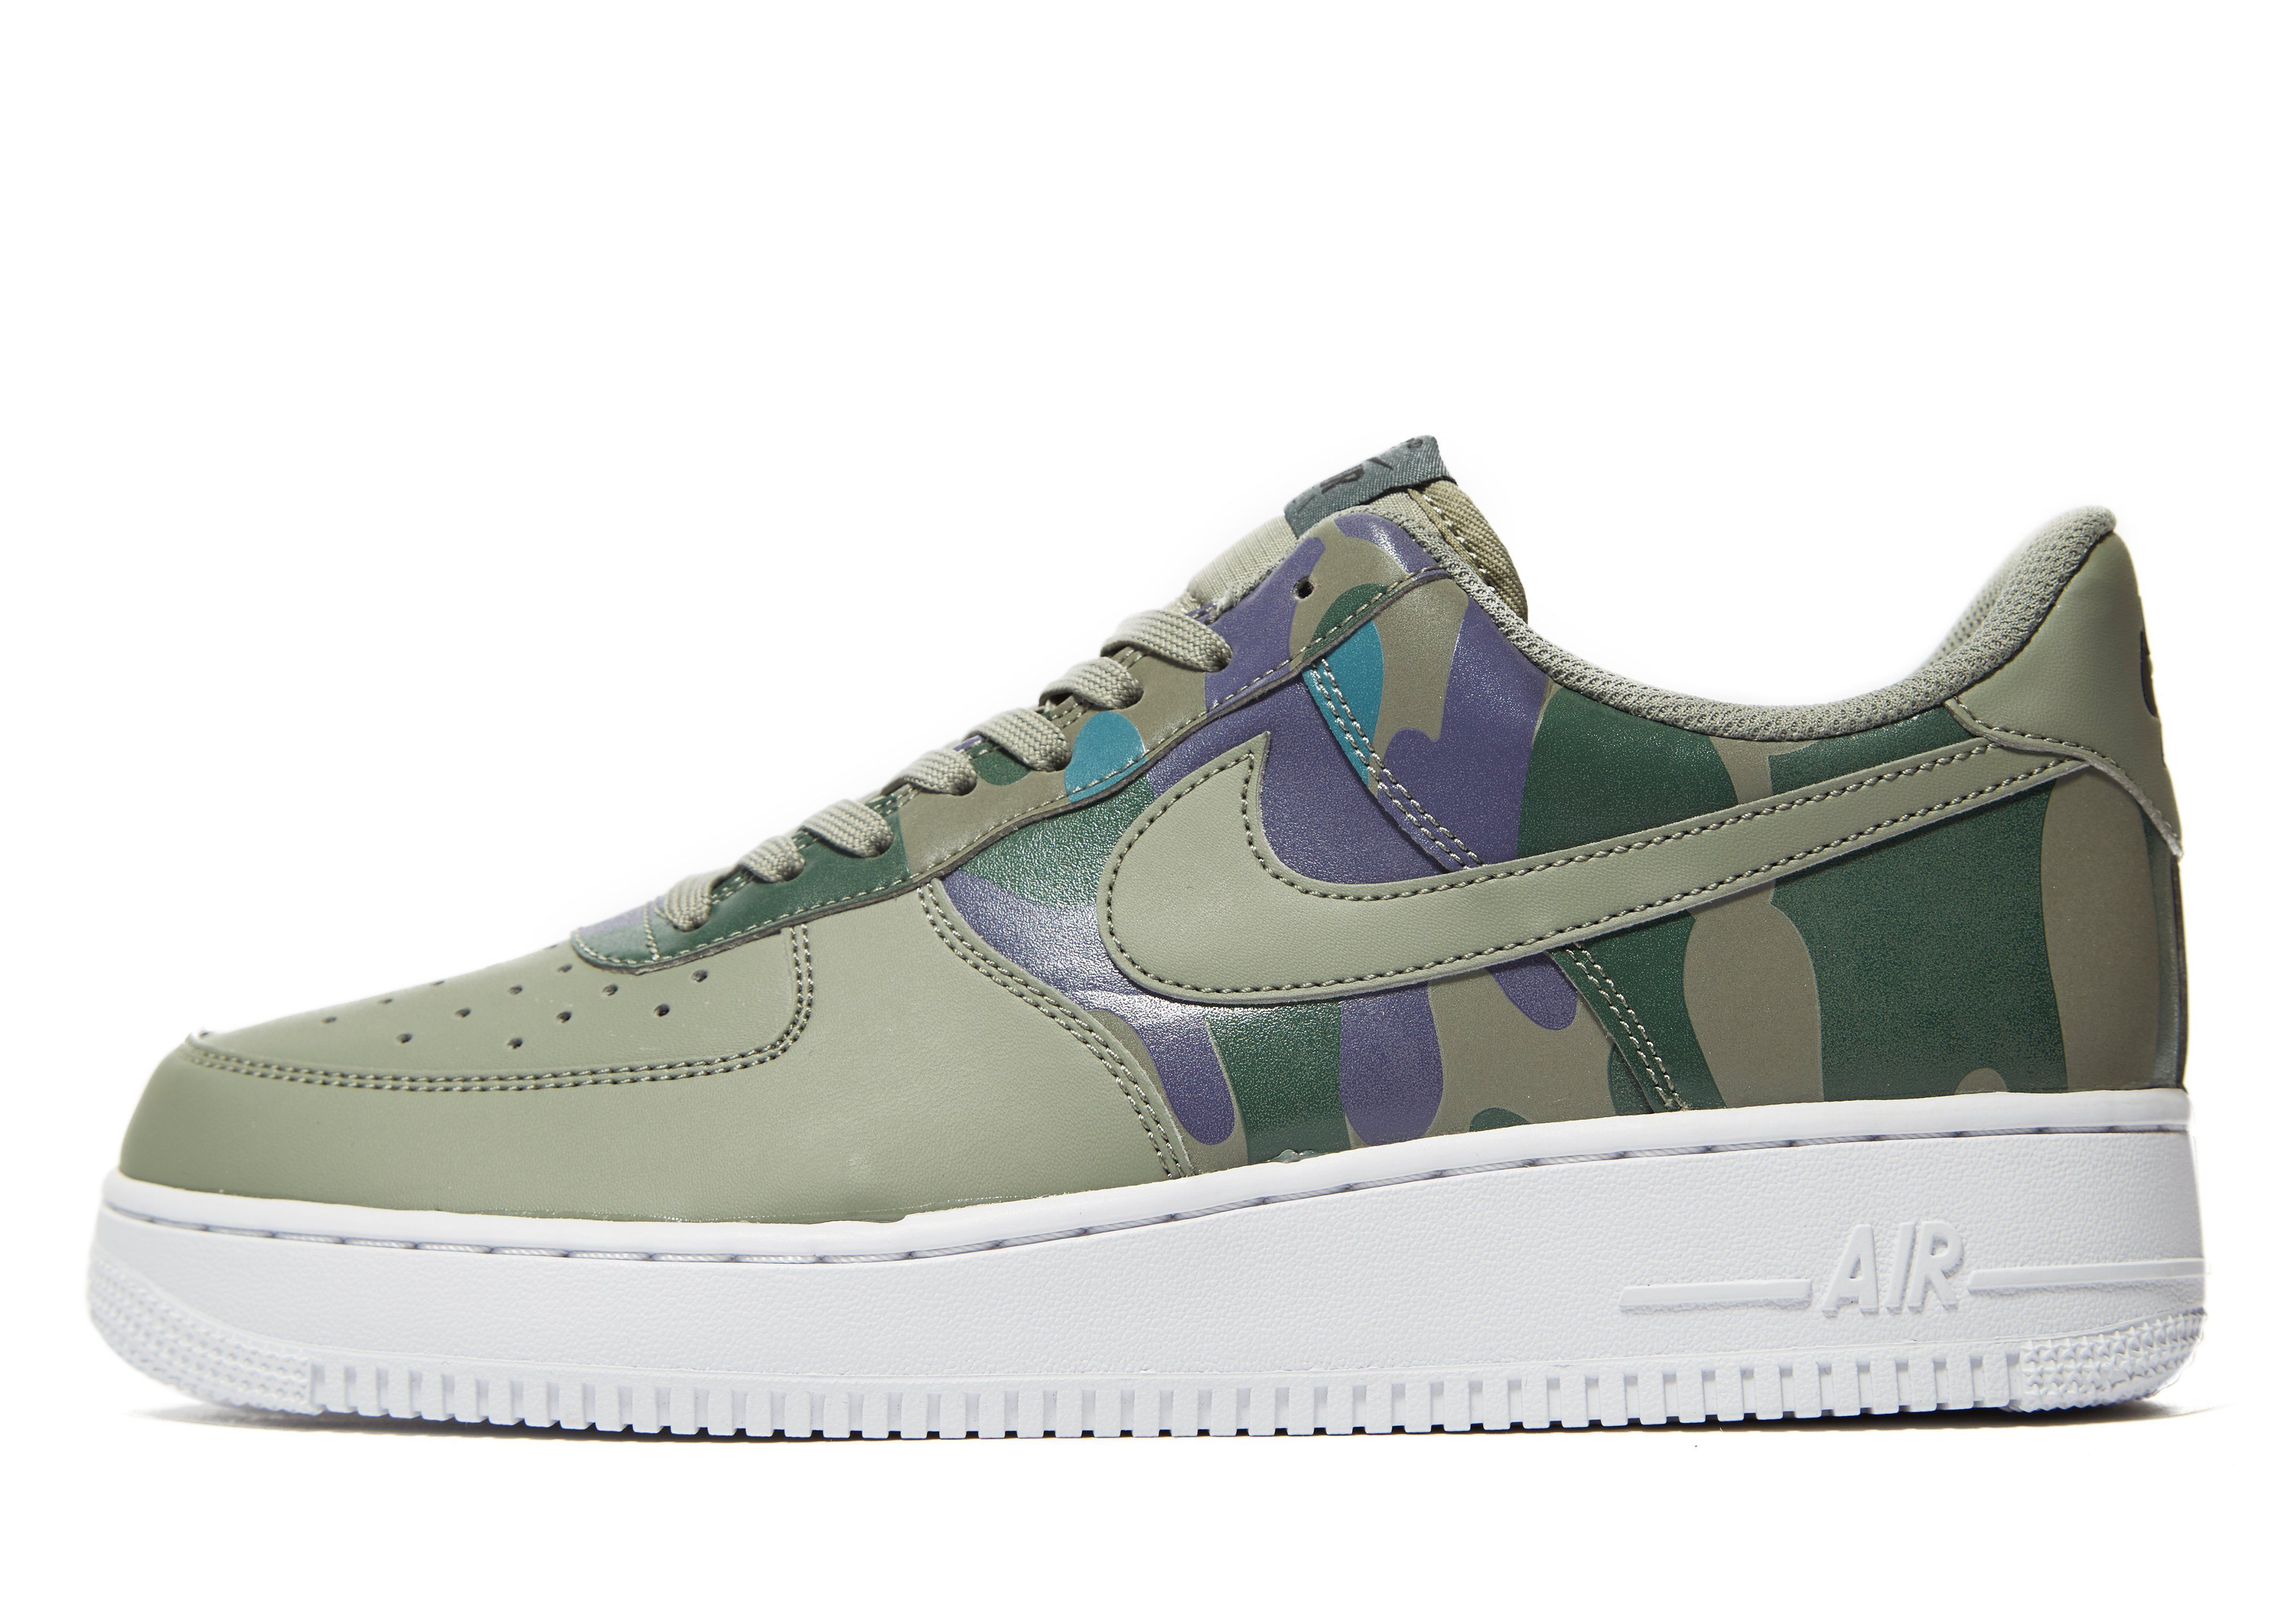 Nike Air Force 1 LV8 Shop online for Nike Air Force 1